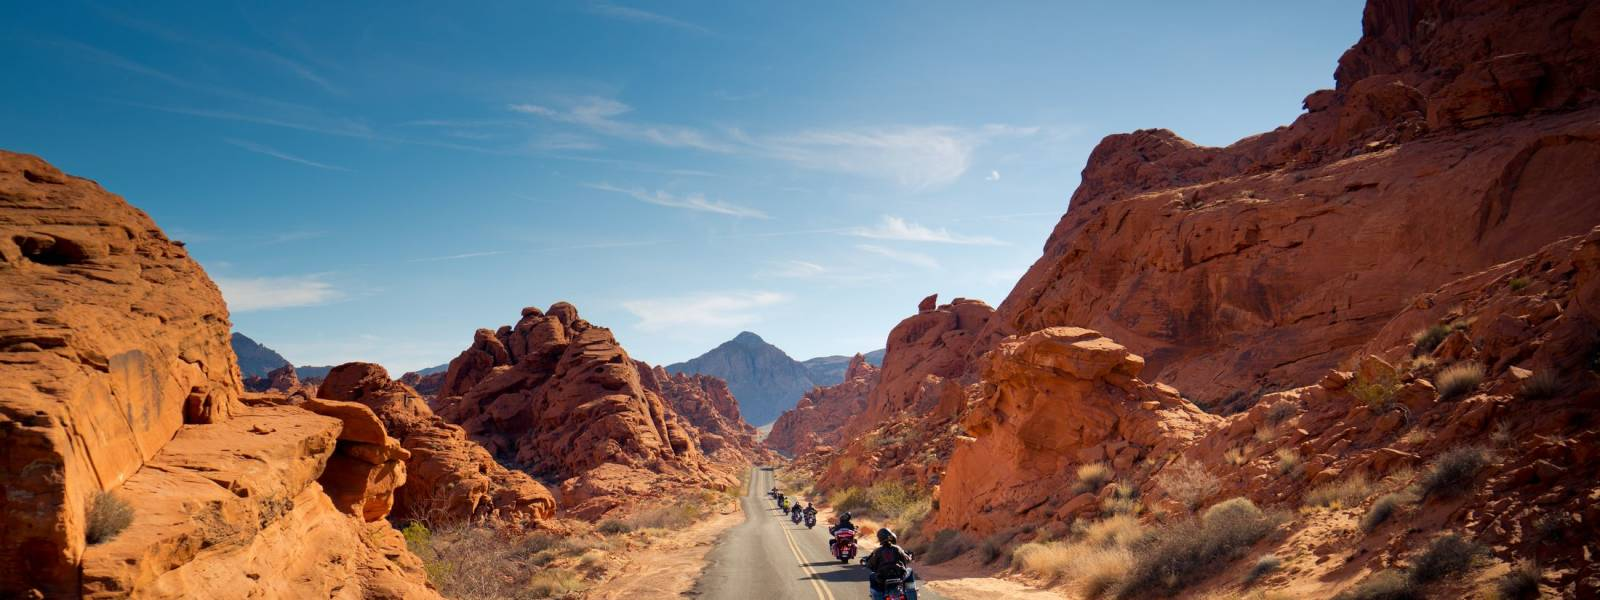 Motorcycle tour of the Wild West